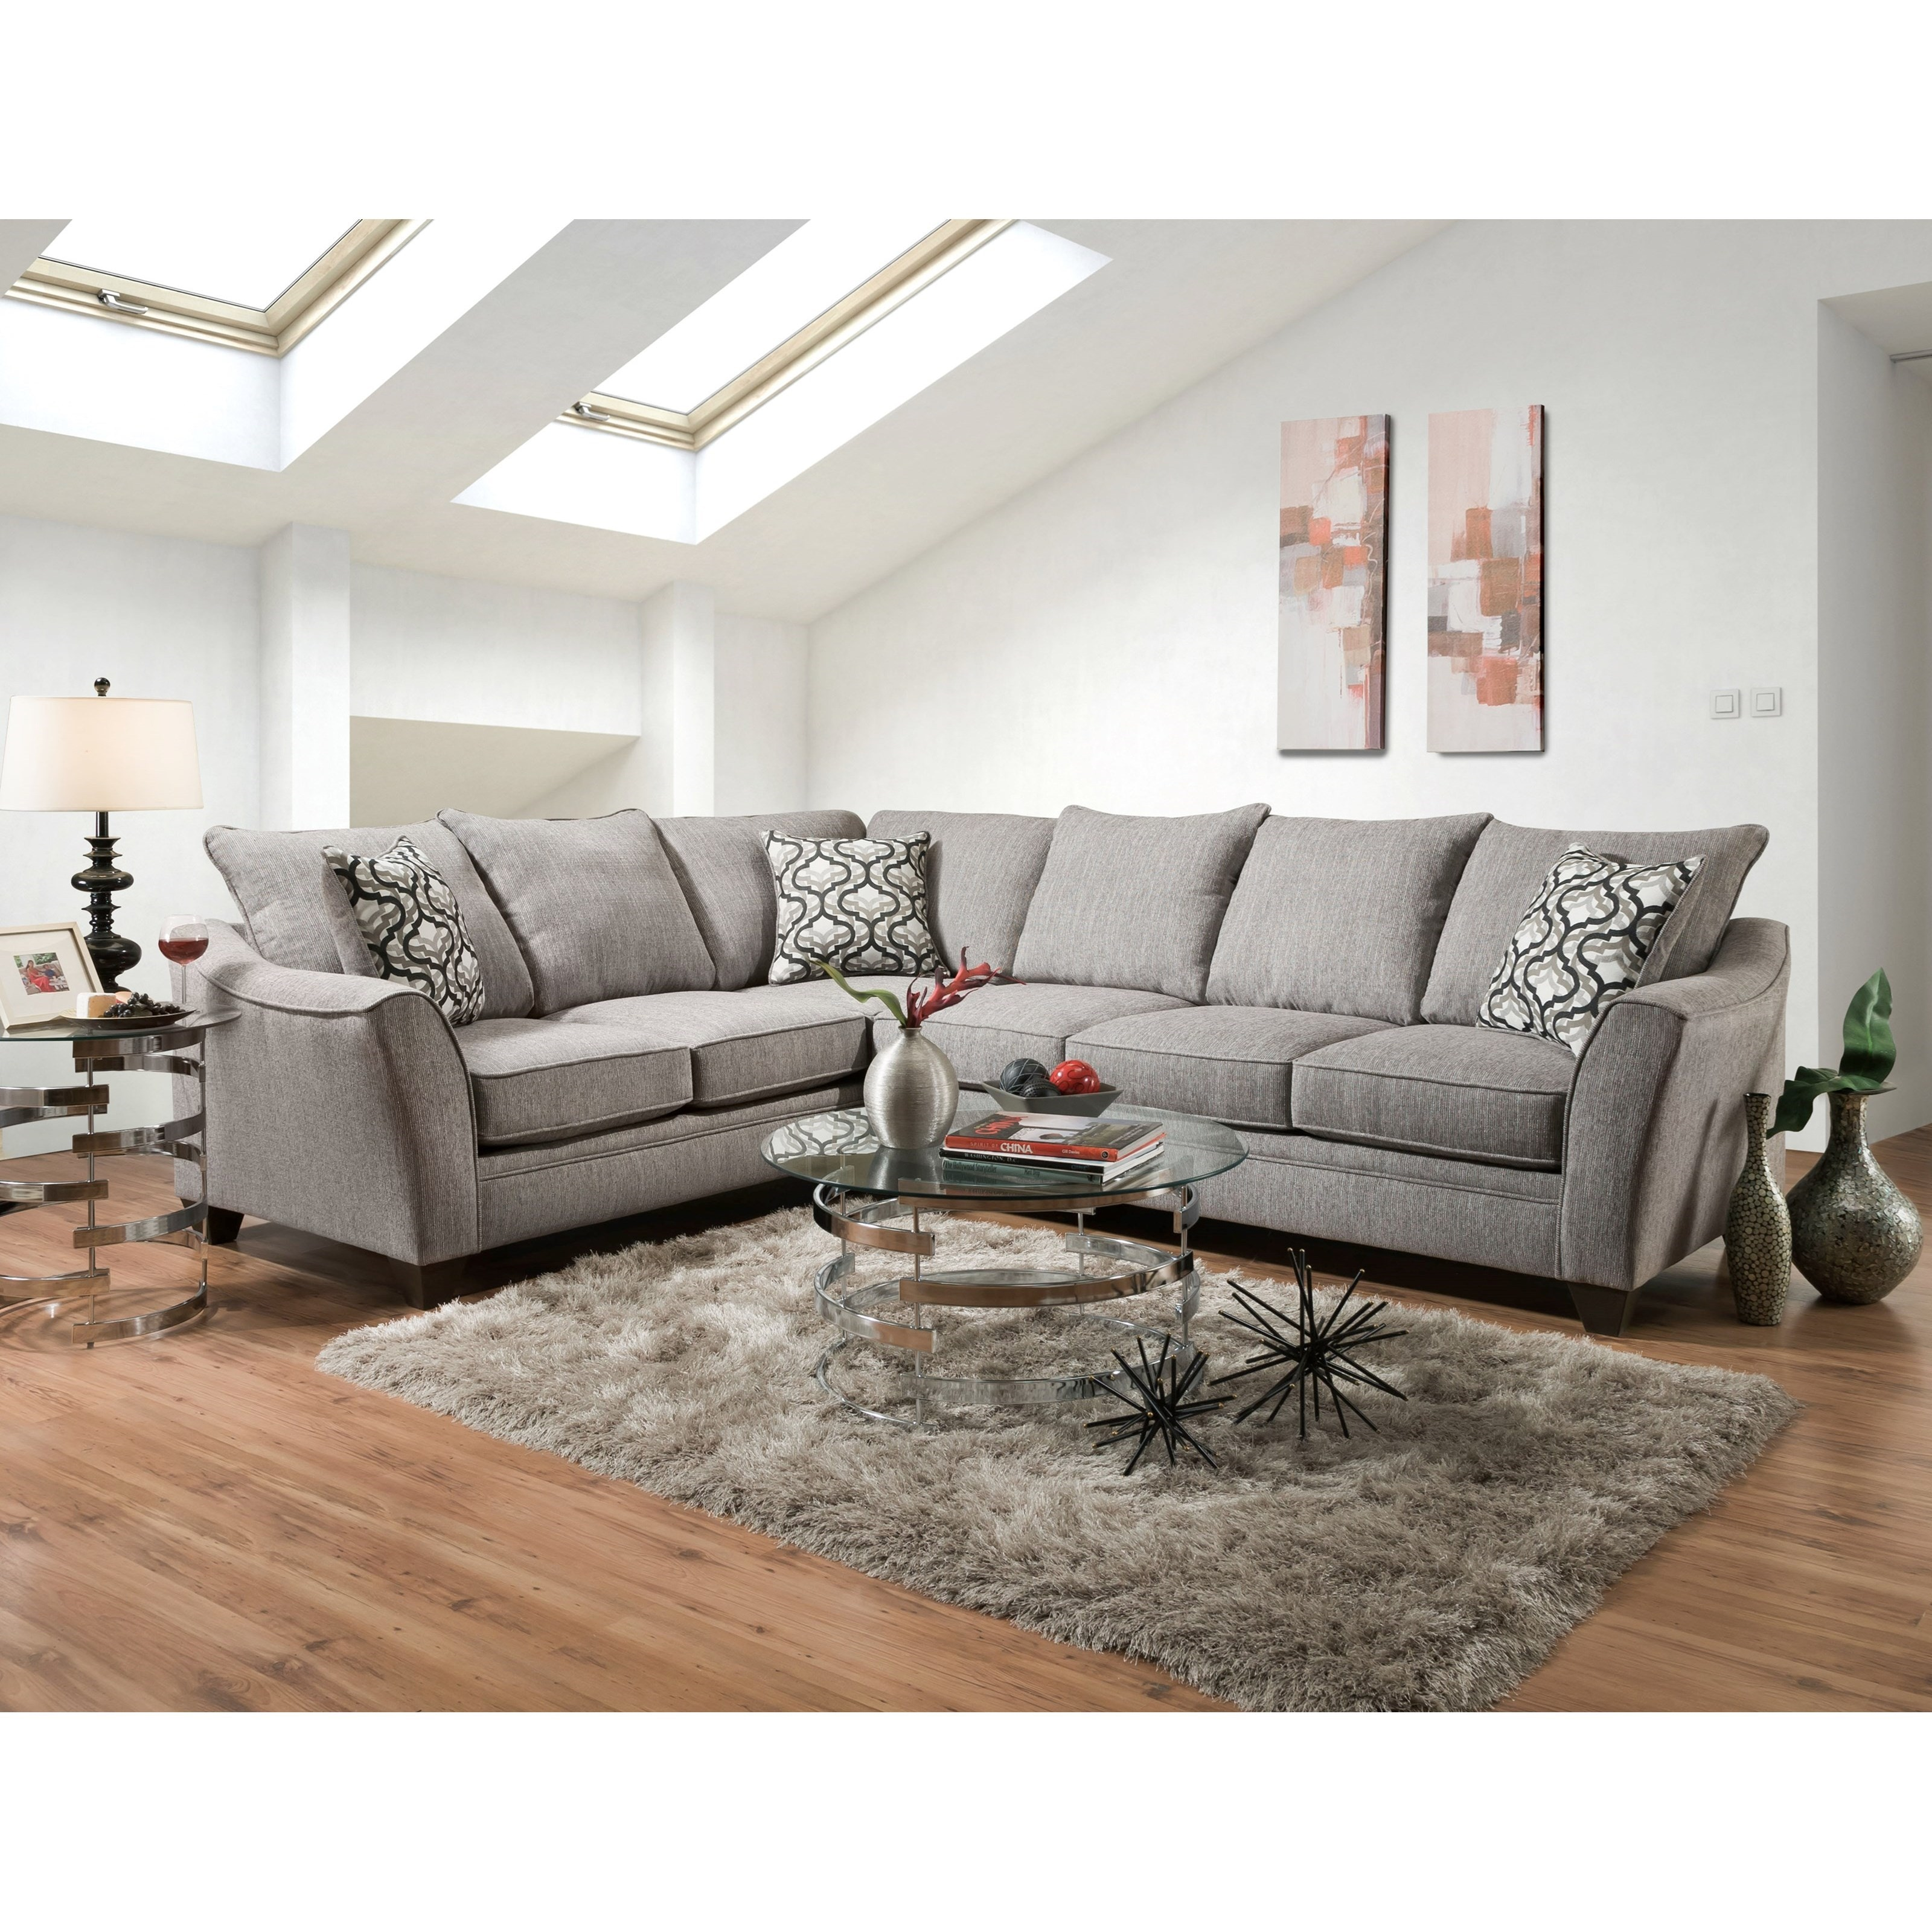 Gentil American Furniture Sectional 814272 84 At Talsma Furniture